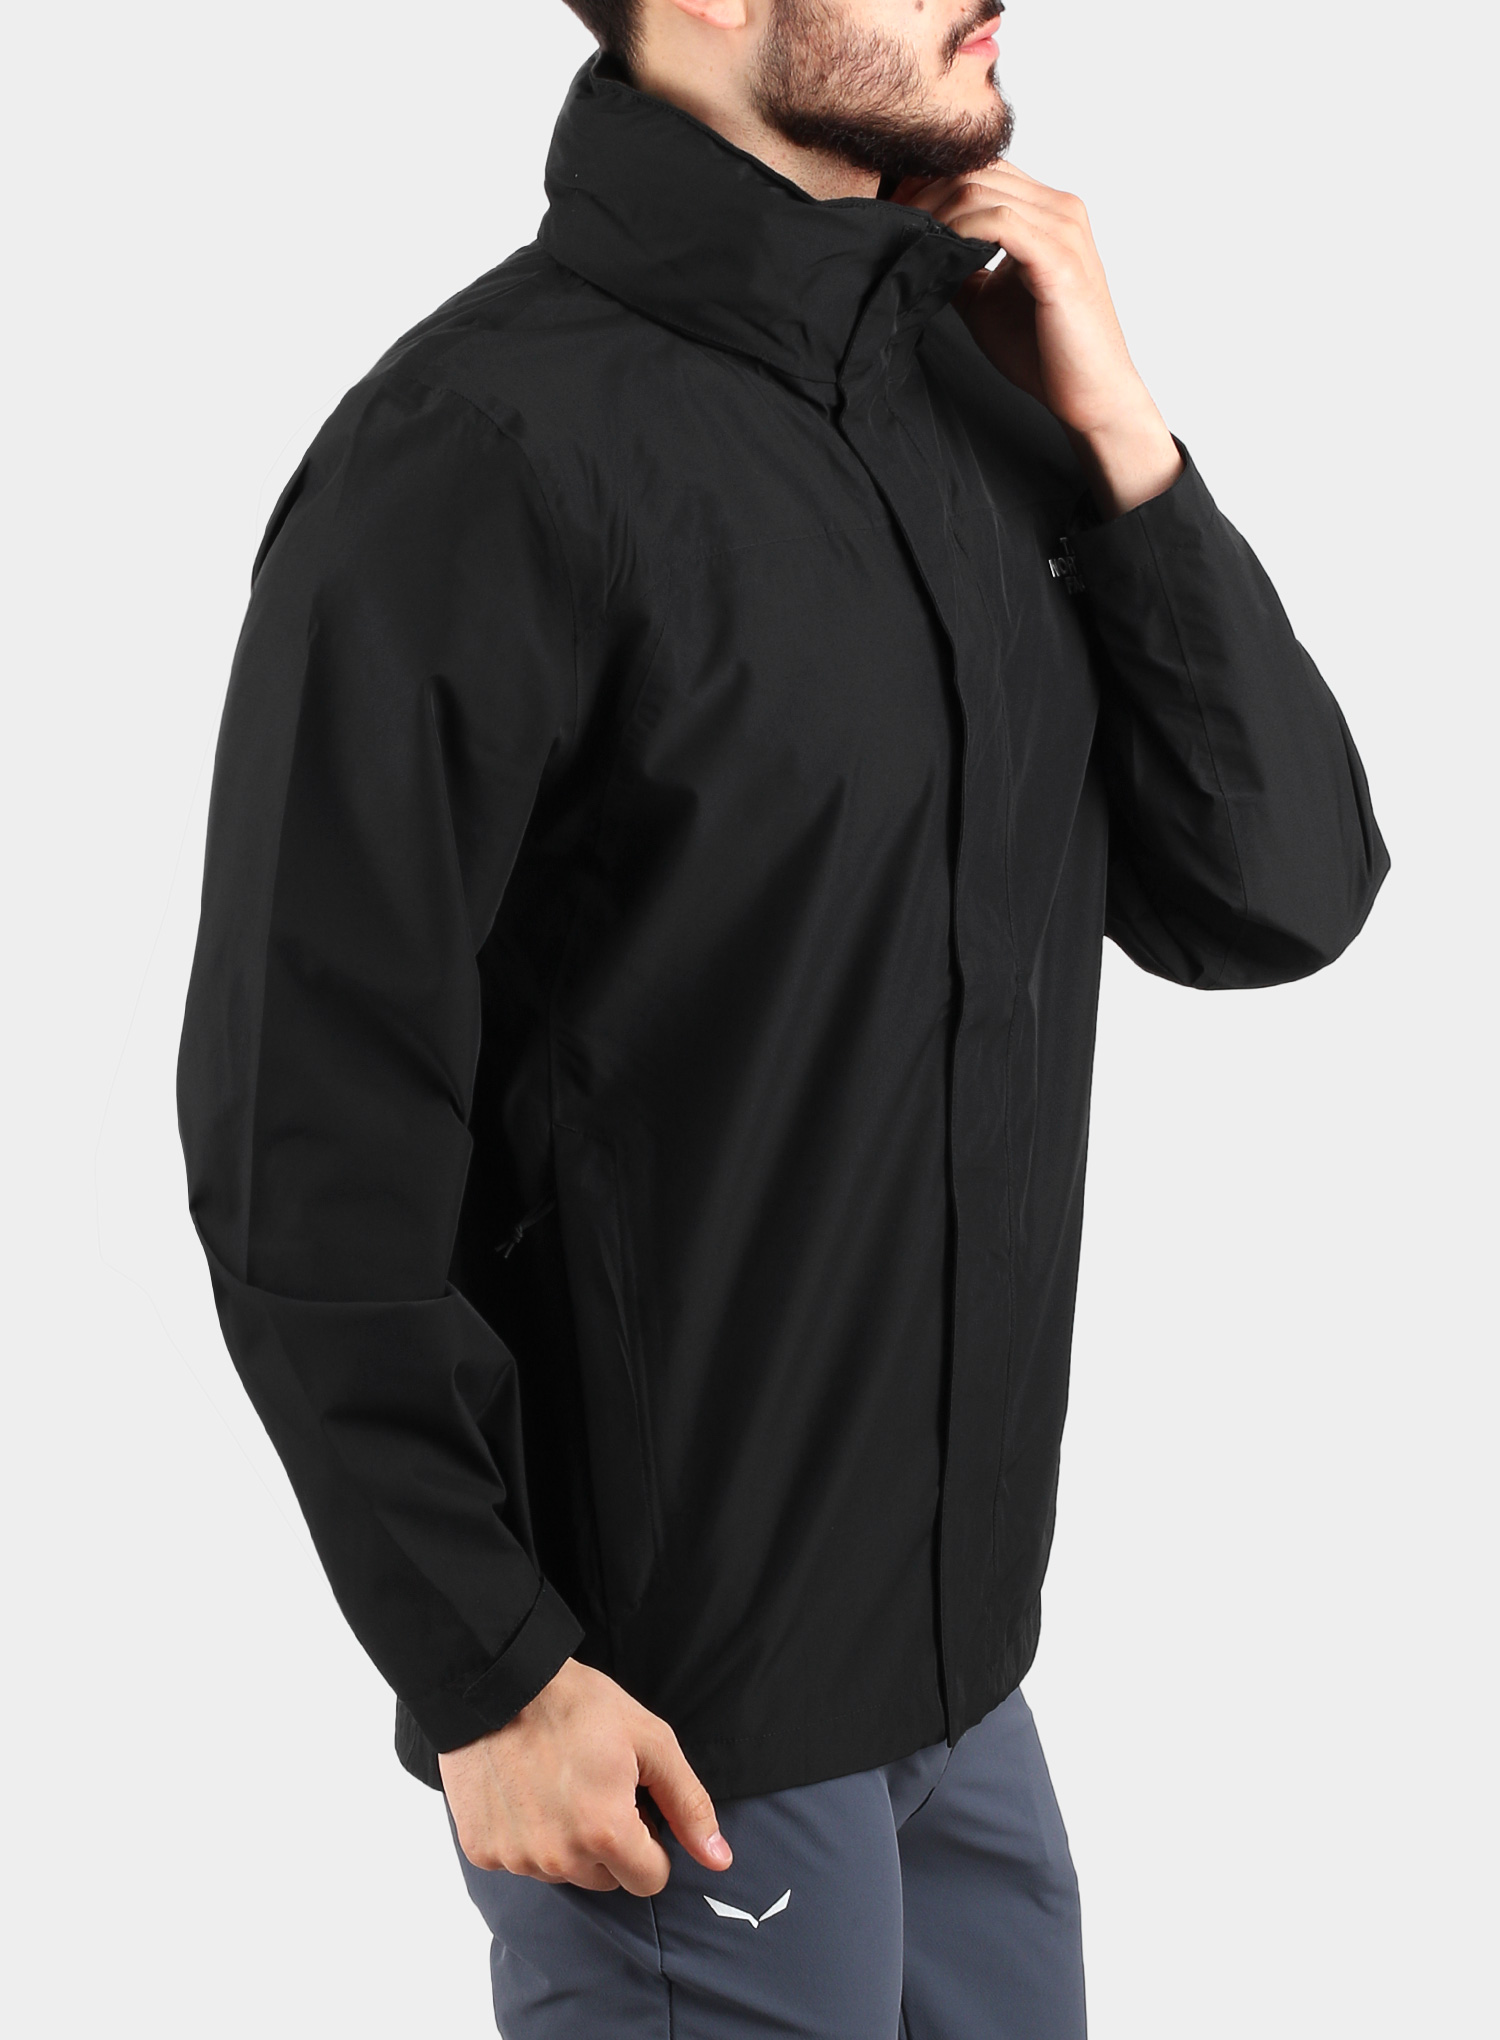 Kurtka The North Face Sangro Jacket - black - zdjęcie nr. 7